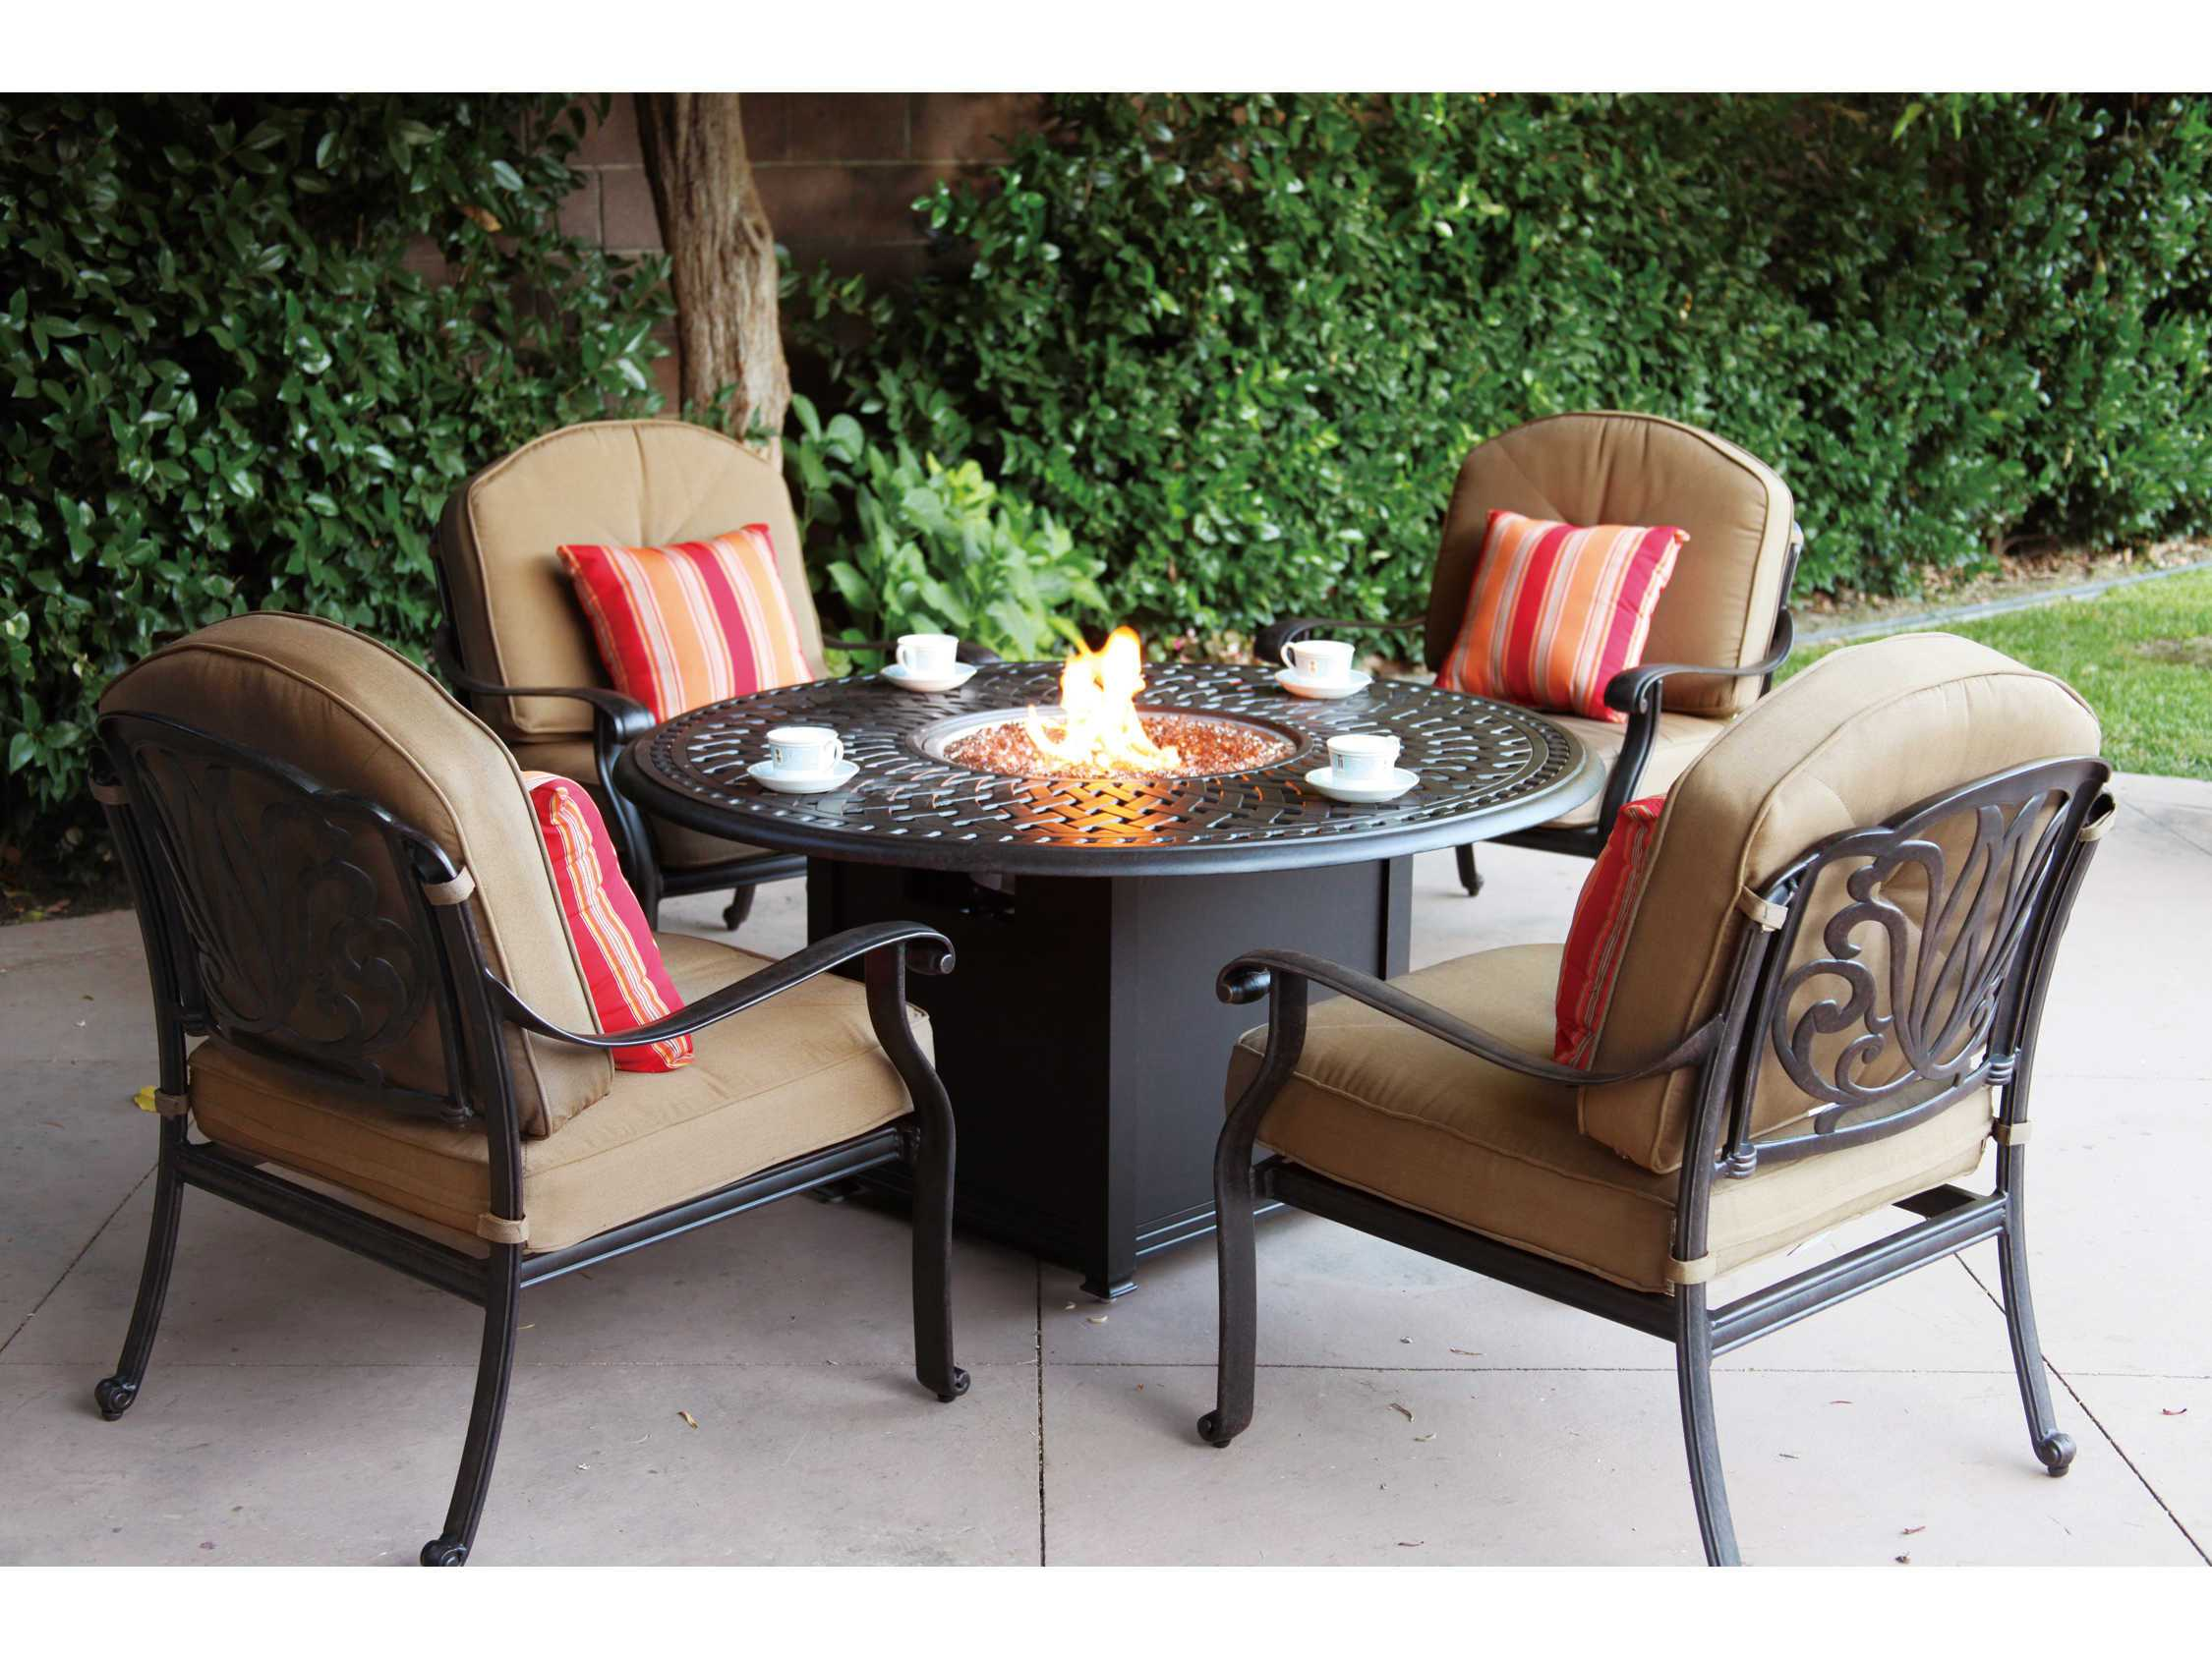 Fire Pit Dining TableLarge Size Of Fire Pits Outdoor  : DAELISABETHSETLzm from algarveglobal.com size 2250 x 1688 jpeg 268kB